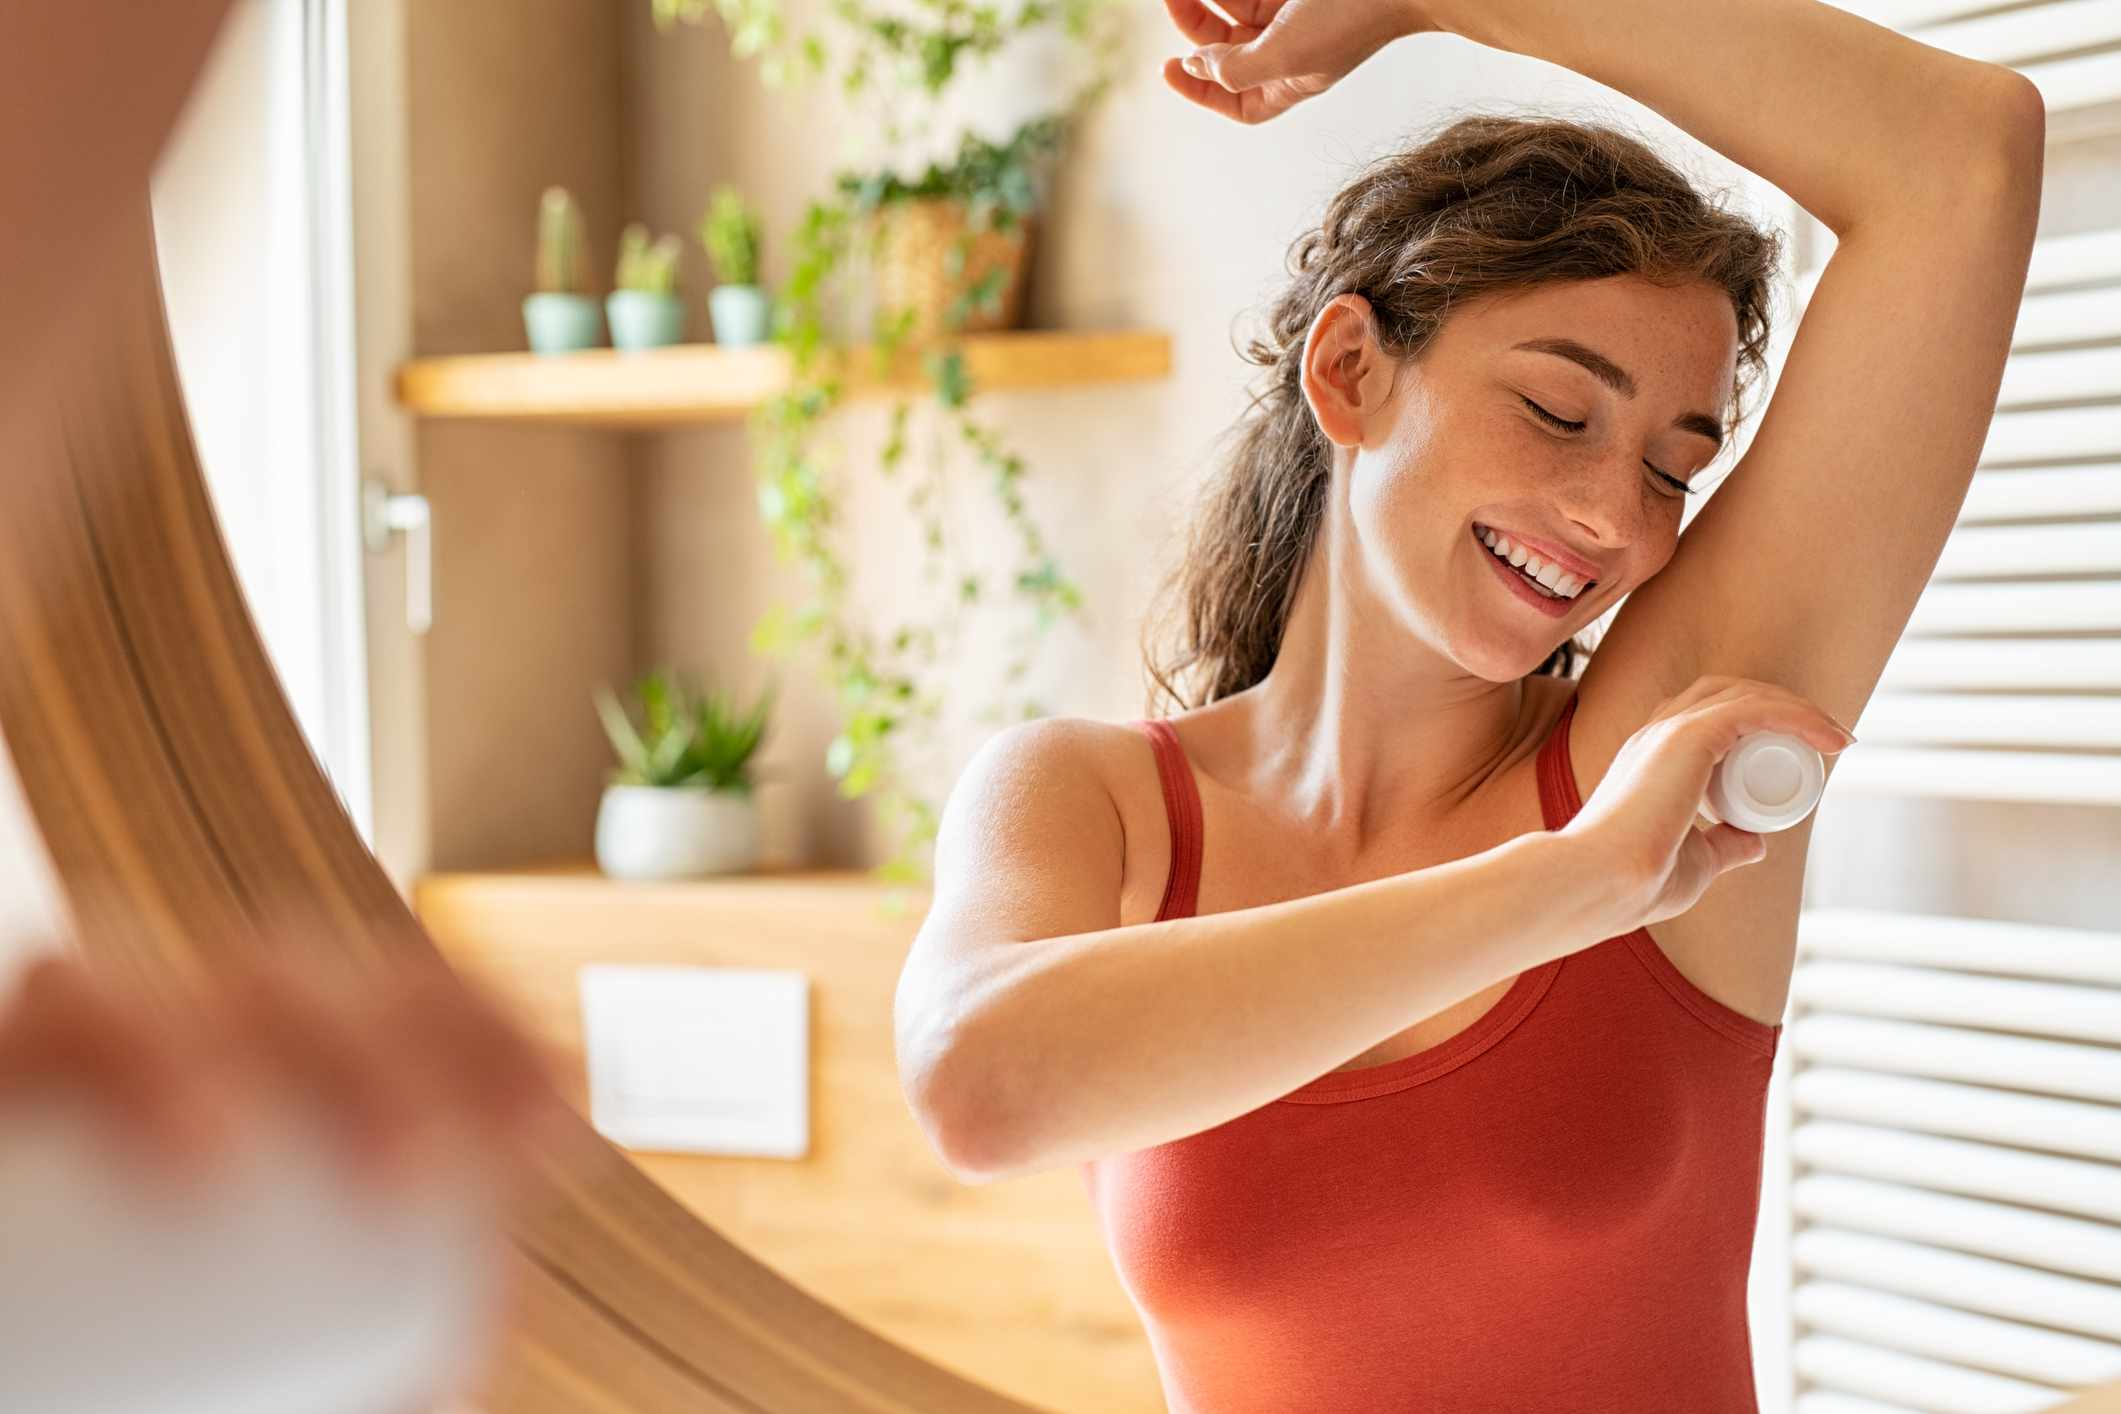 A woman putting on deodorant in a washroom with bright natural light.